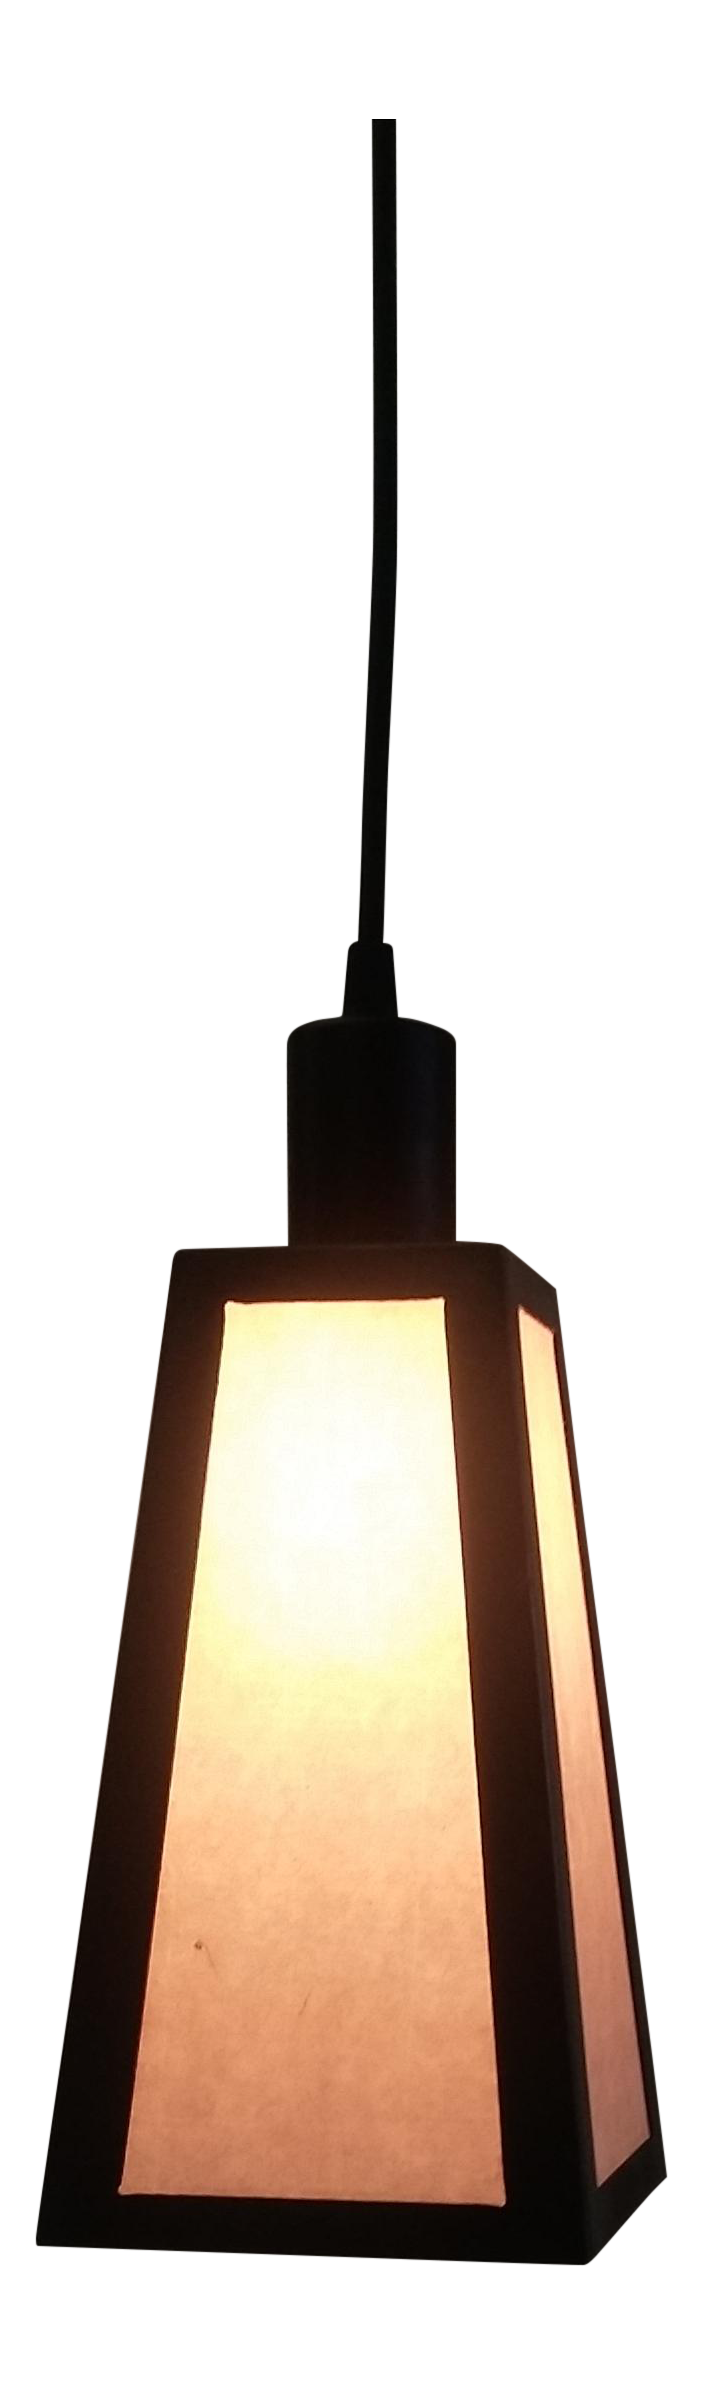 asian pendant lighting. nara pendant light asian lighting